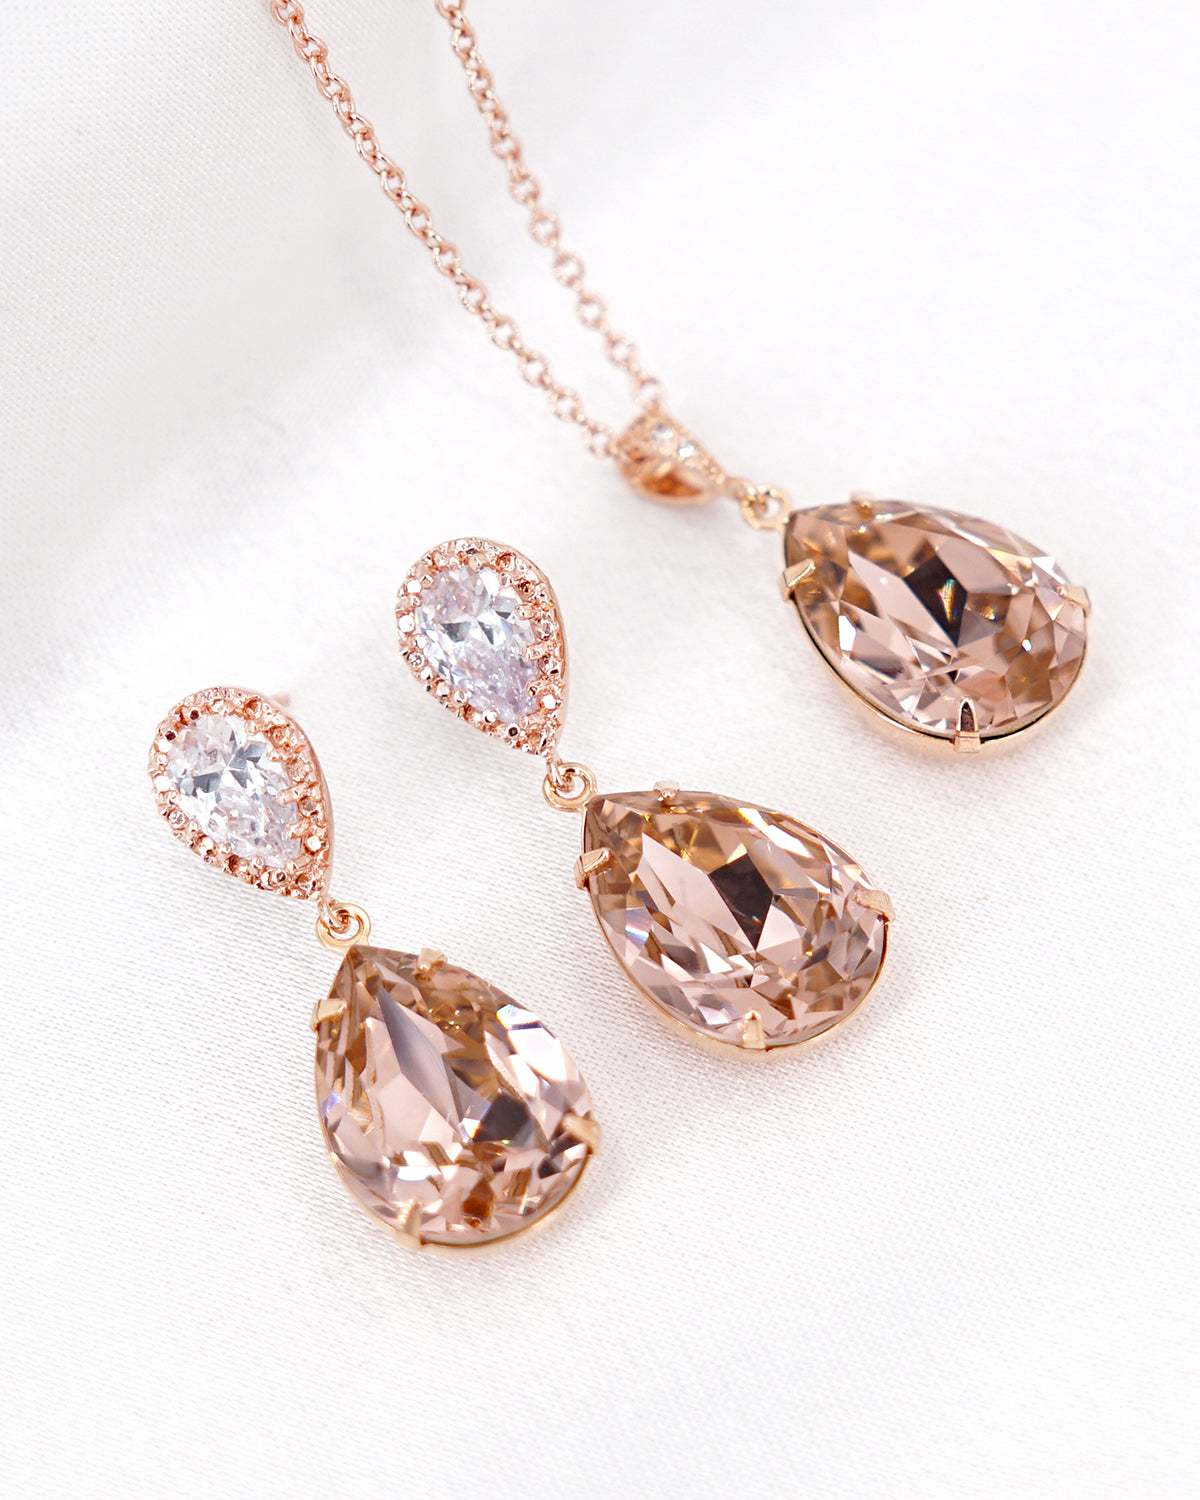 Rose Gold Vintage Rose Crystal Earrings and Necklace | Wedding Bride Bridesmaids Jewelry Gift